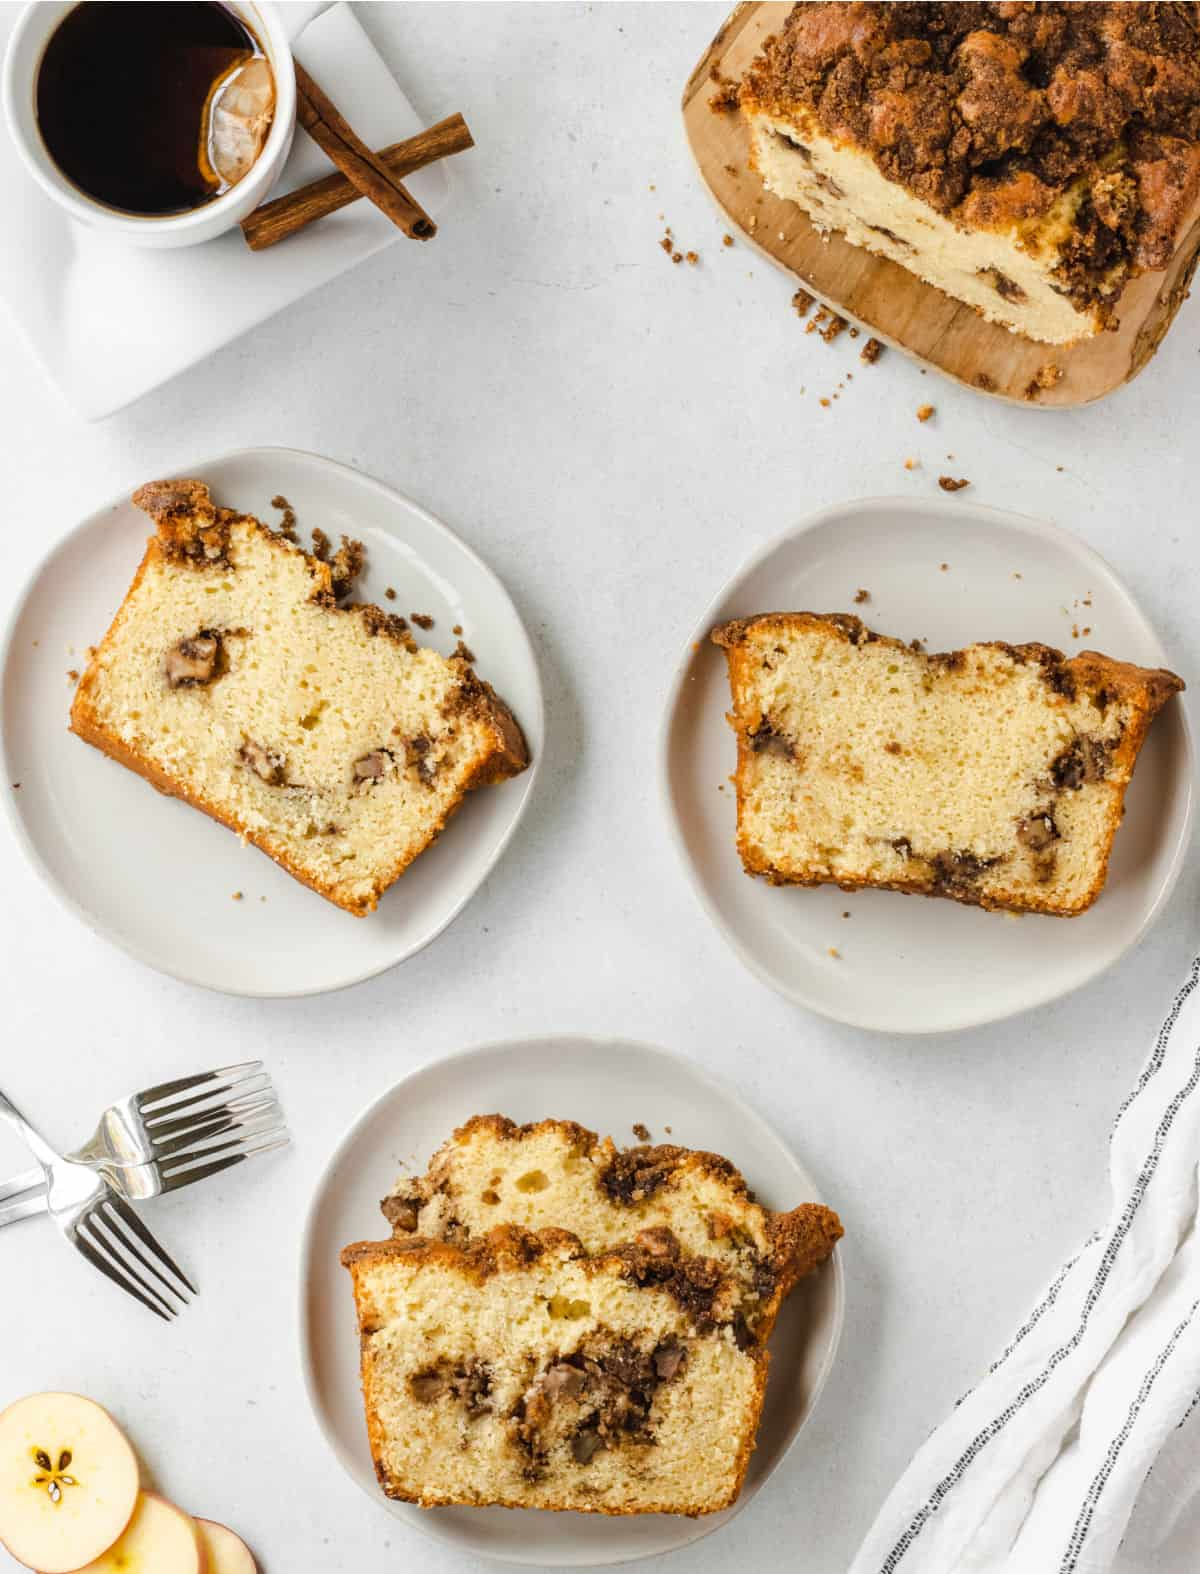 Chai spices and sweet apples baked into one delicious loaf! Chai Apple Bread is a moist, sweet and filled with real apple pieces. Bake up a loaf to fill your kitchen with a tantalizing aroma of classic fall flavors.